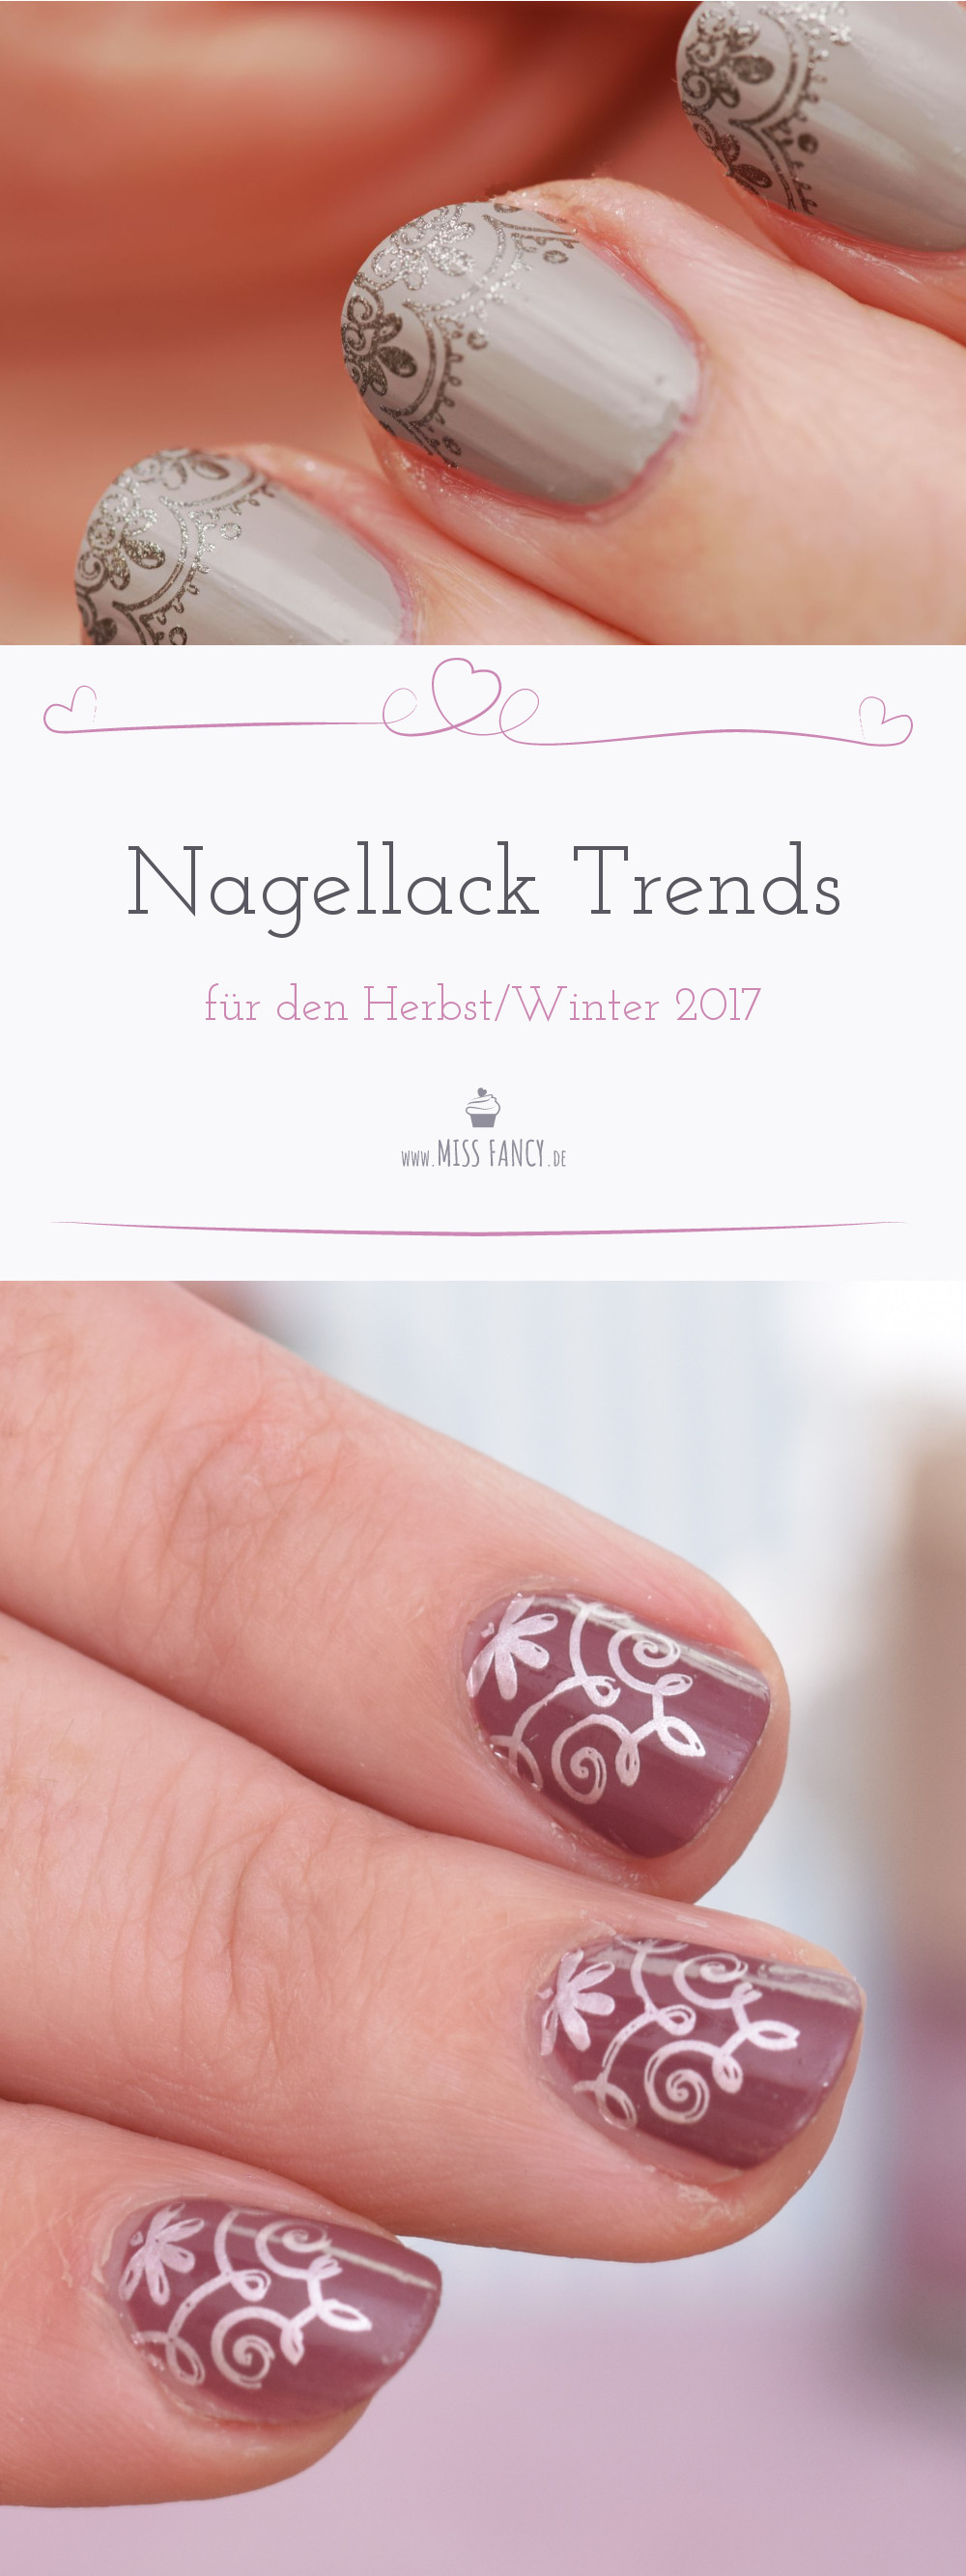 Nagellack-Trends-Herbst-Winter-2017-Missfancy-Beautyblog